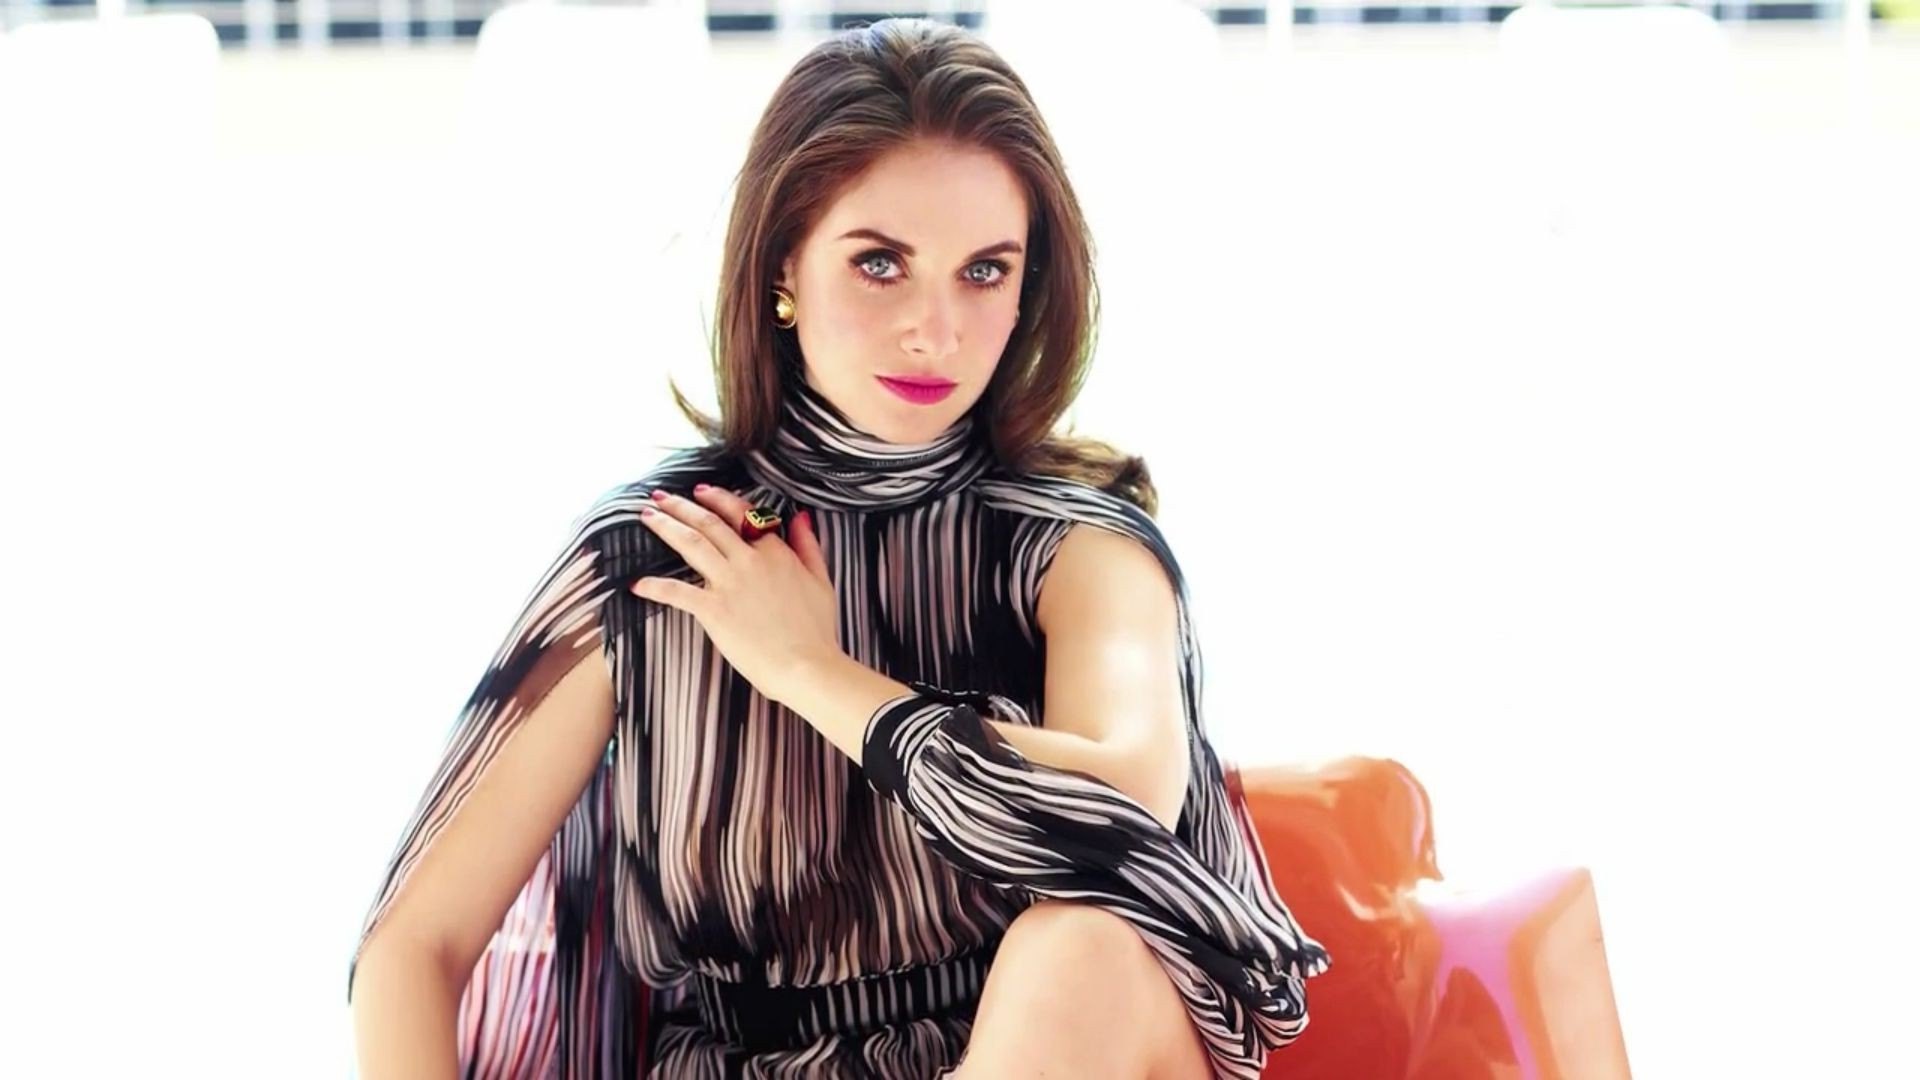 Image Result For Alison Brie Hd Wallpaper Wallpapers X Women Alison Brie